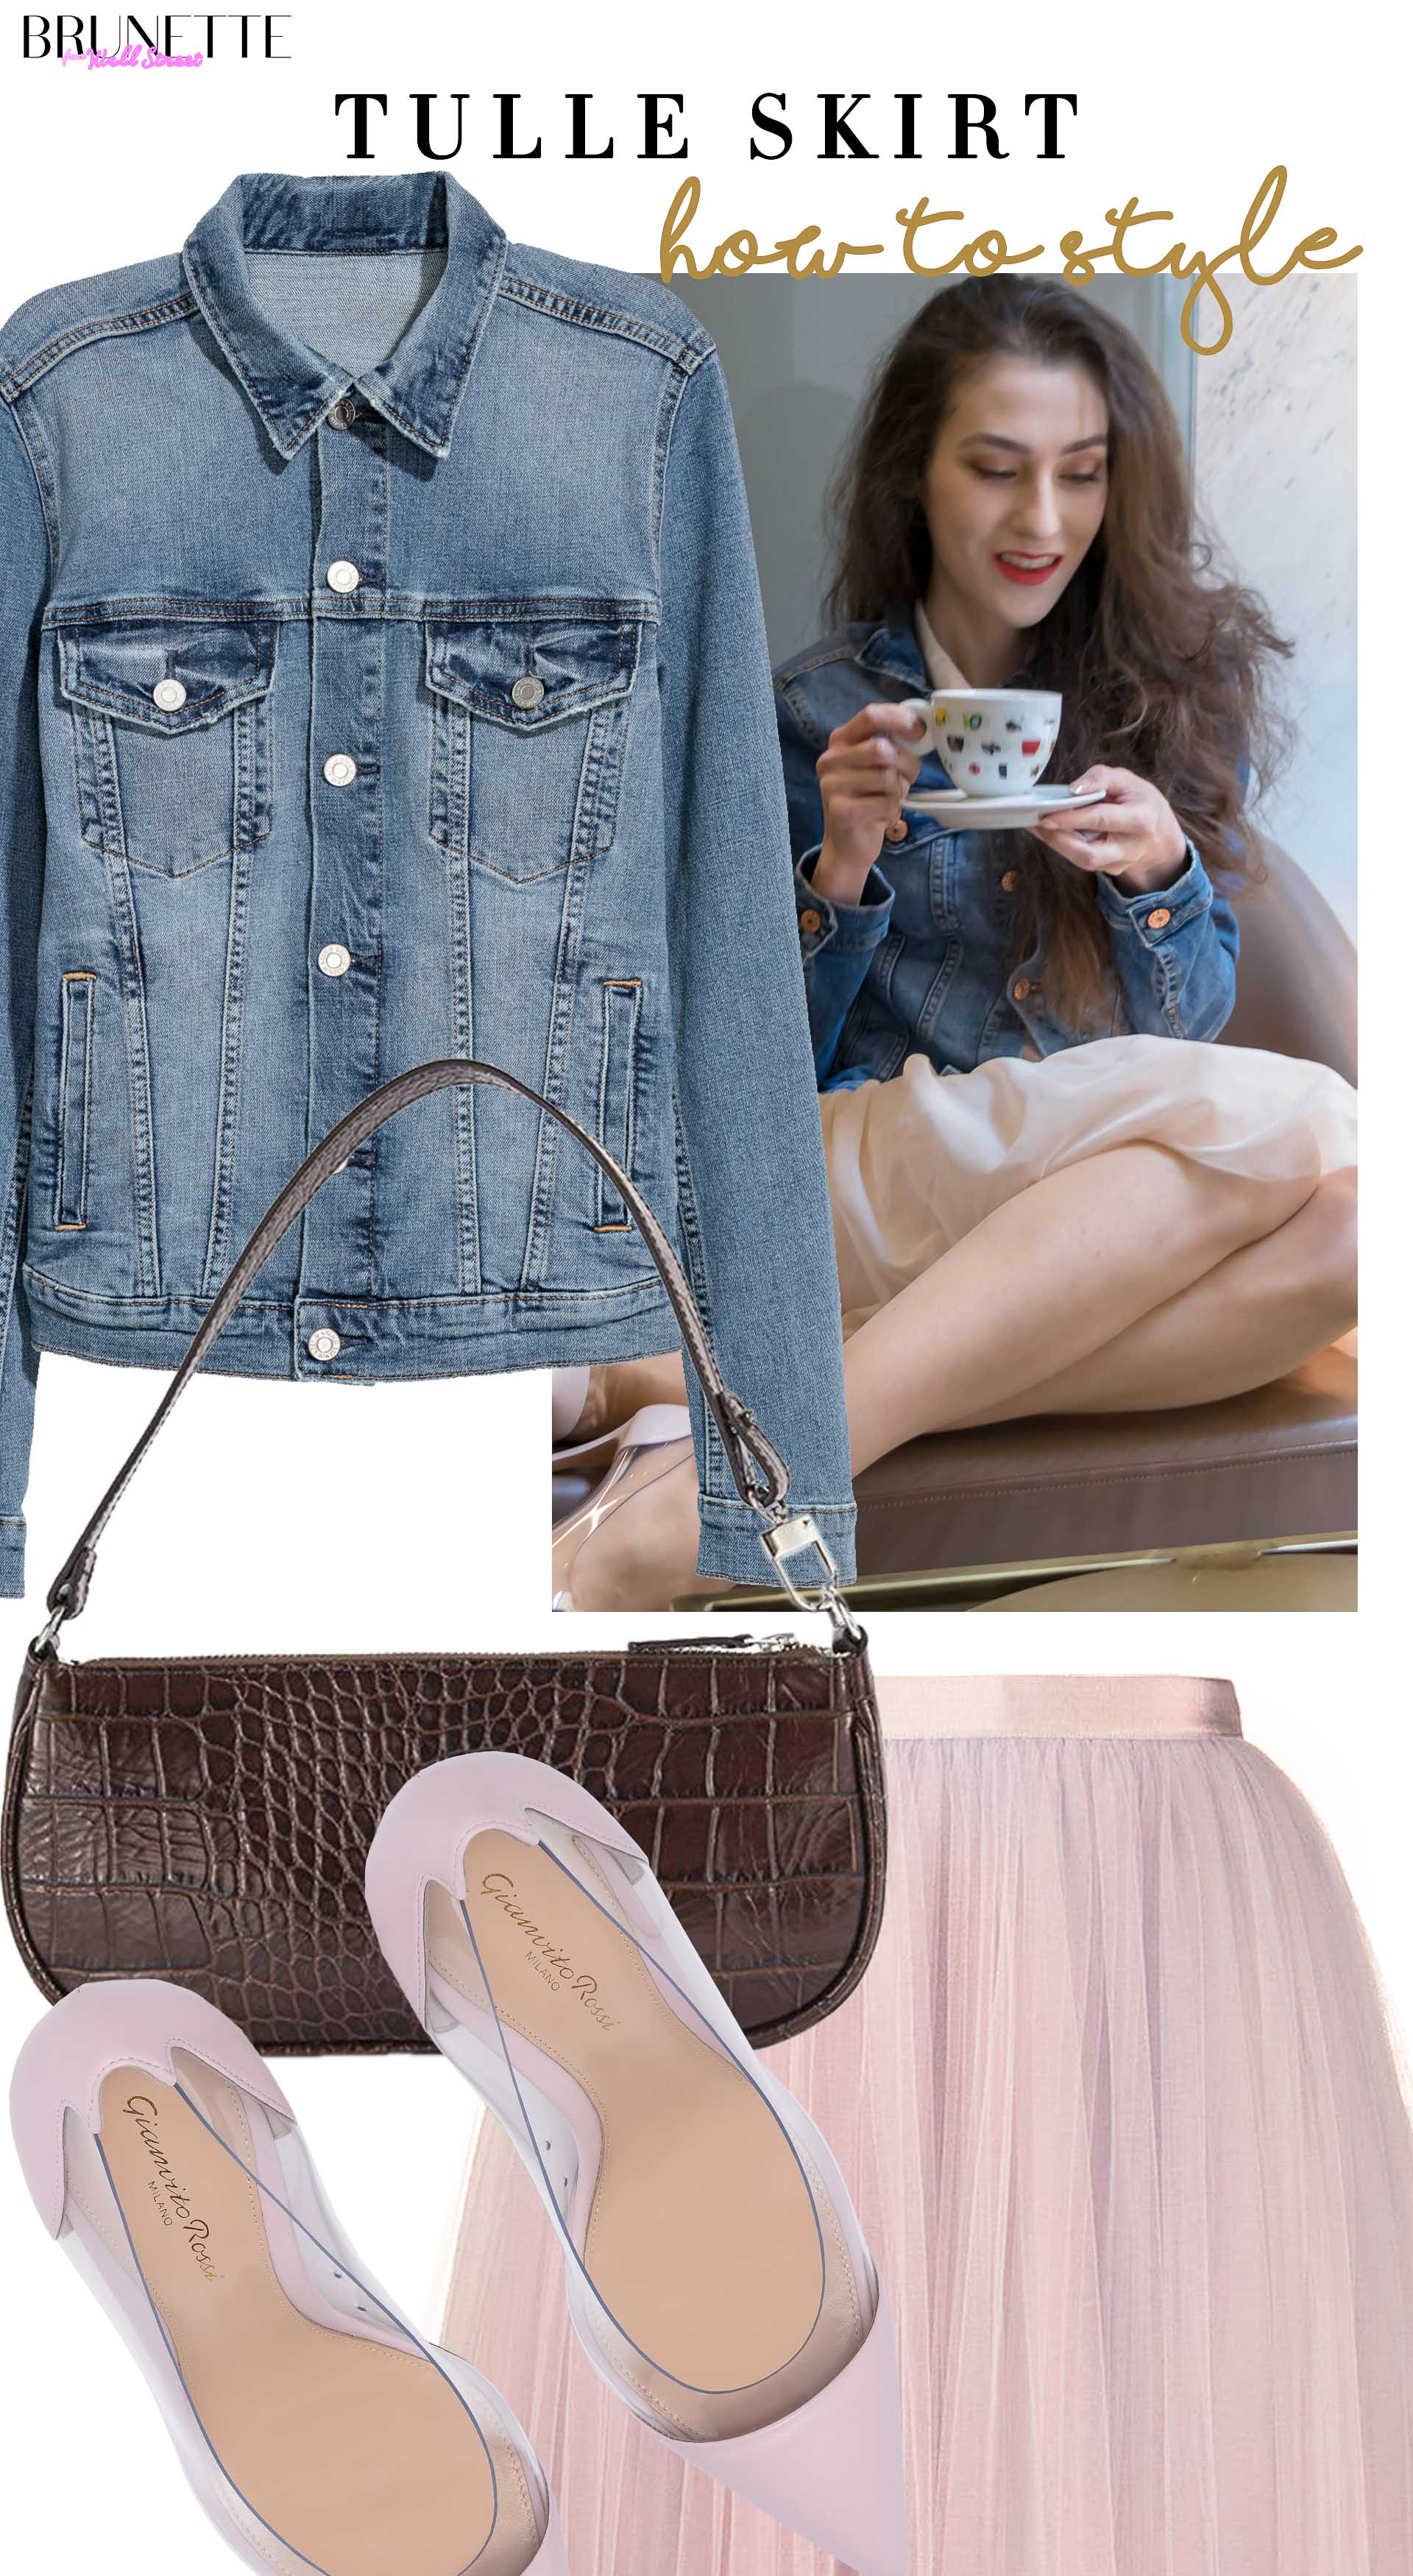 Brunette from Wall Street how to style tulle skirt denim jacket pink plexi Gianvito Rossi pumps by Far shoulder bag for a coffee date